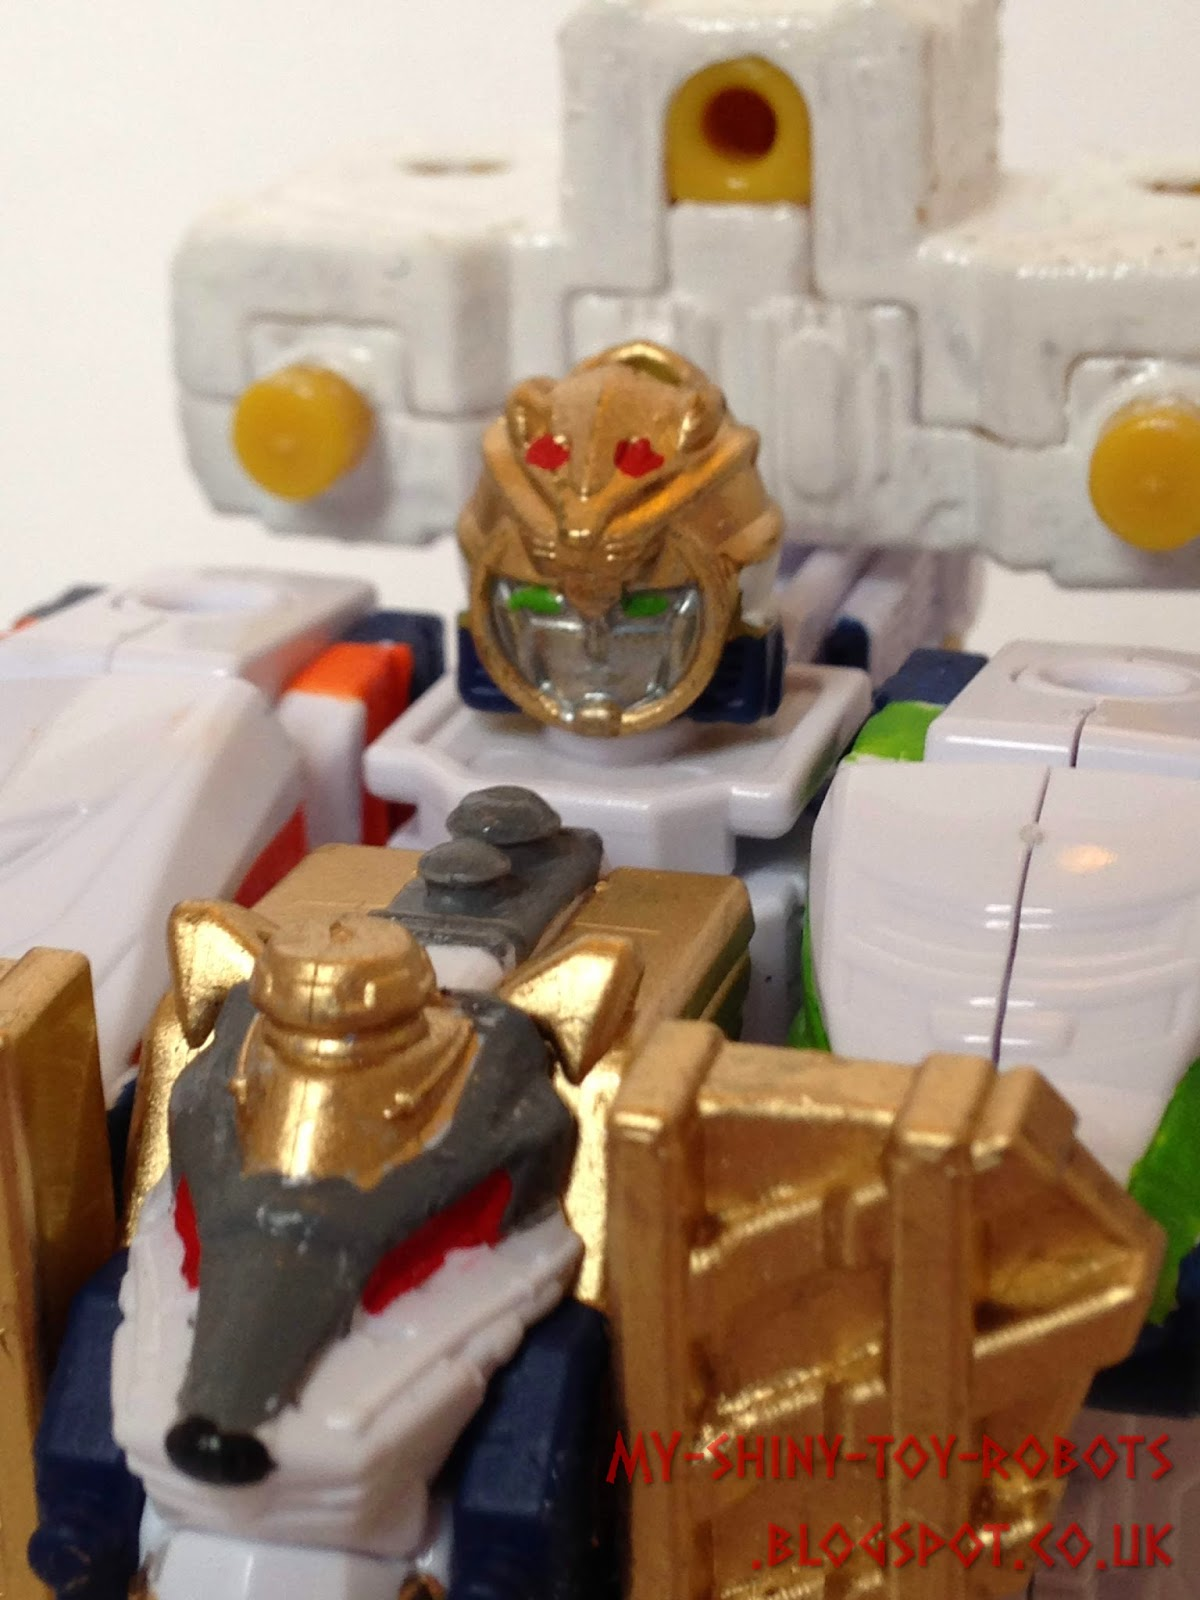 Minipla Safari GaOh from Ressha Sentai ToQger the Movie